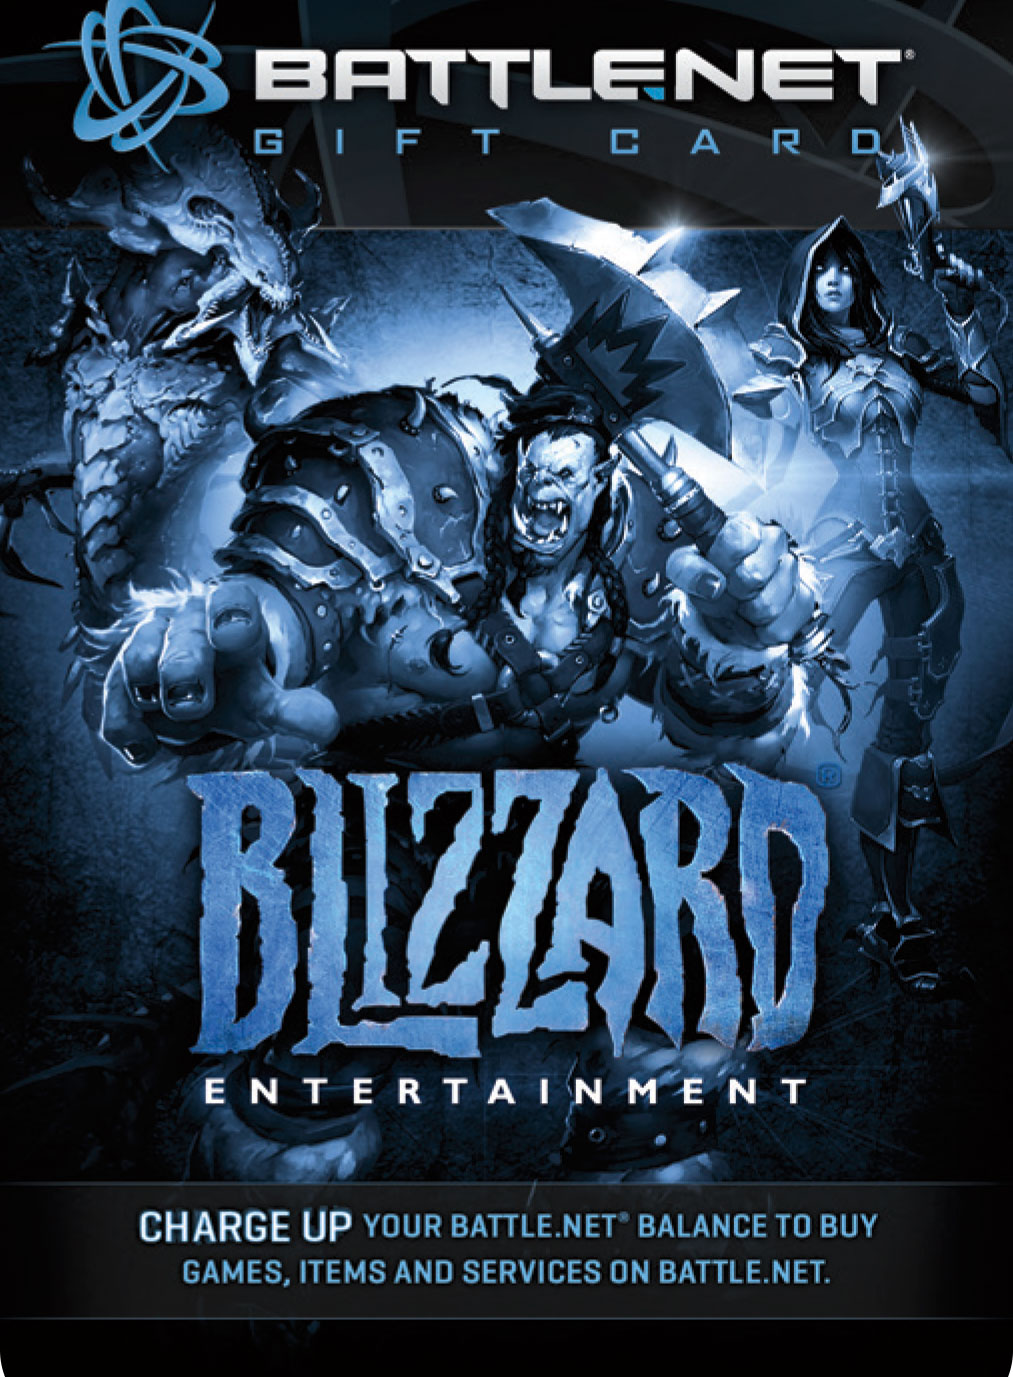 Software ($20 Battle.net Store Gift Card Balance - Blizzard Entertainment [Digital)